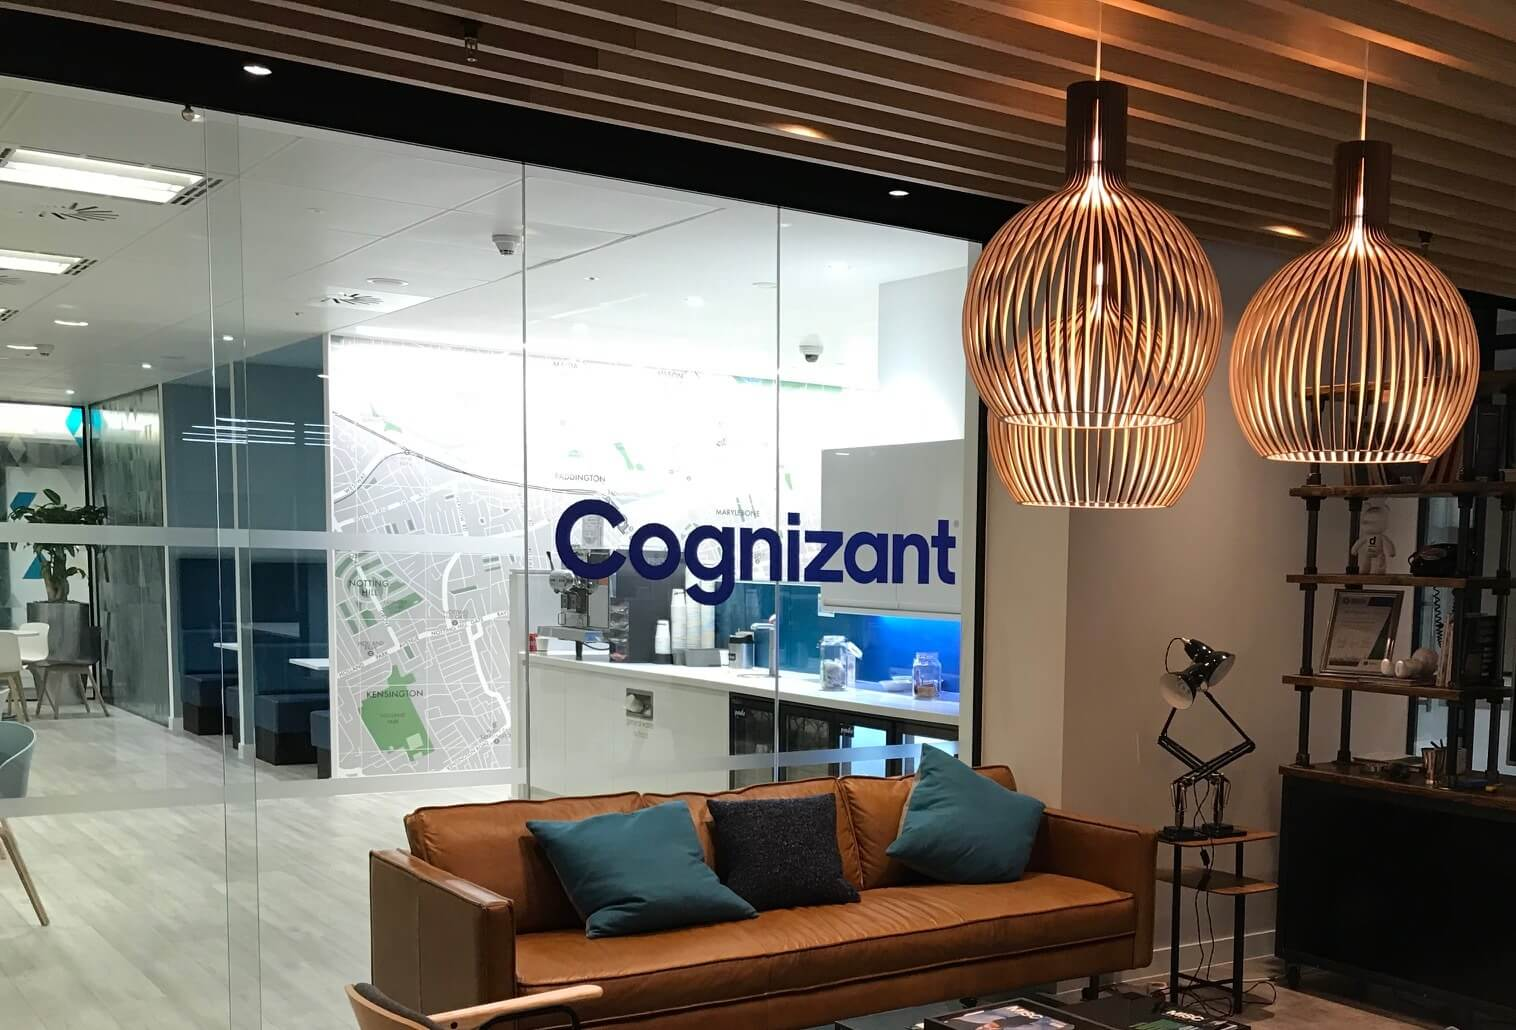 13,000 Jobs to Go as Cognizant Cuts Costs and Pulls Out of Content Moderation